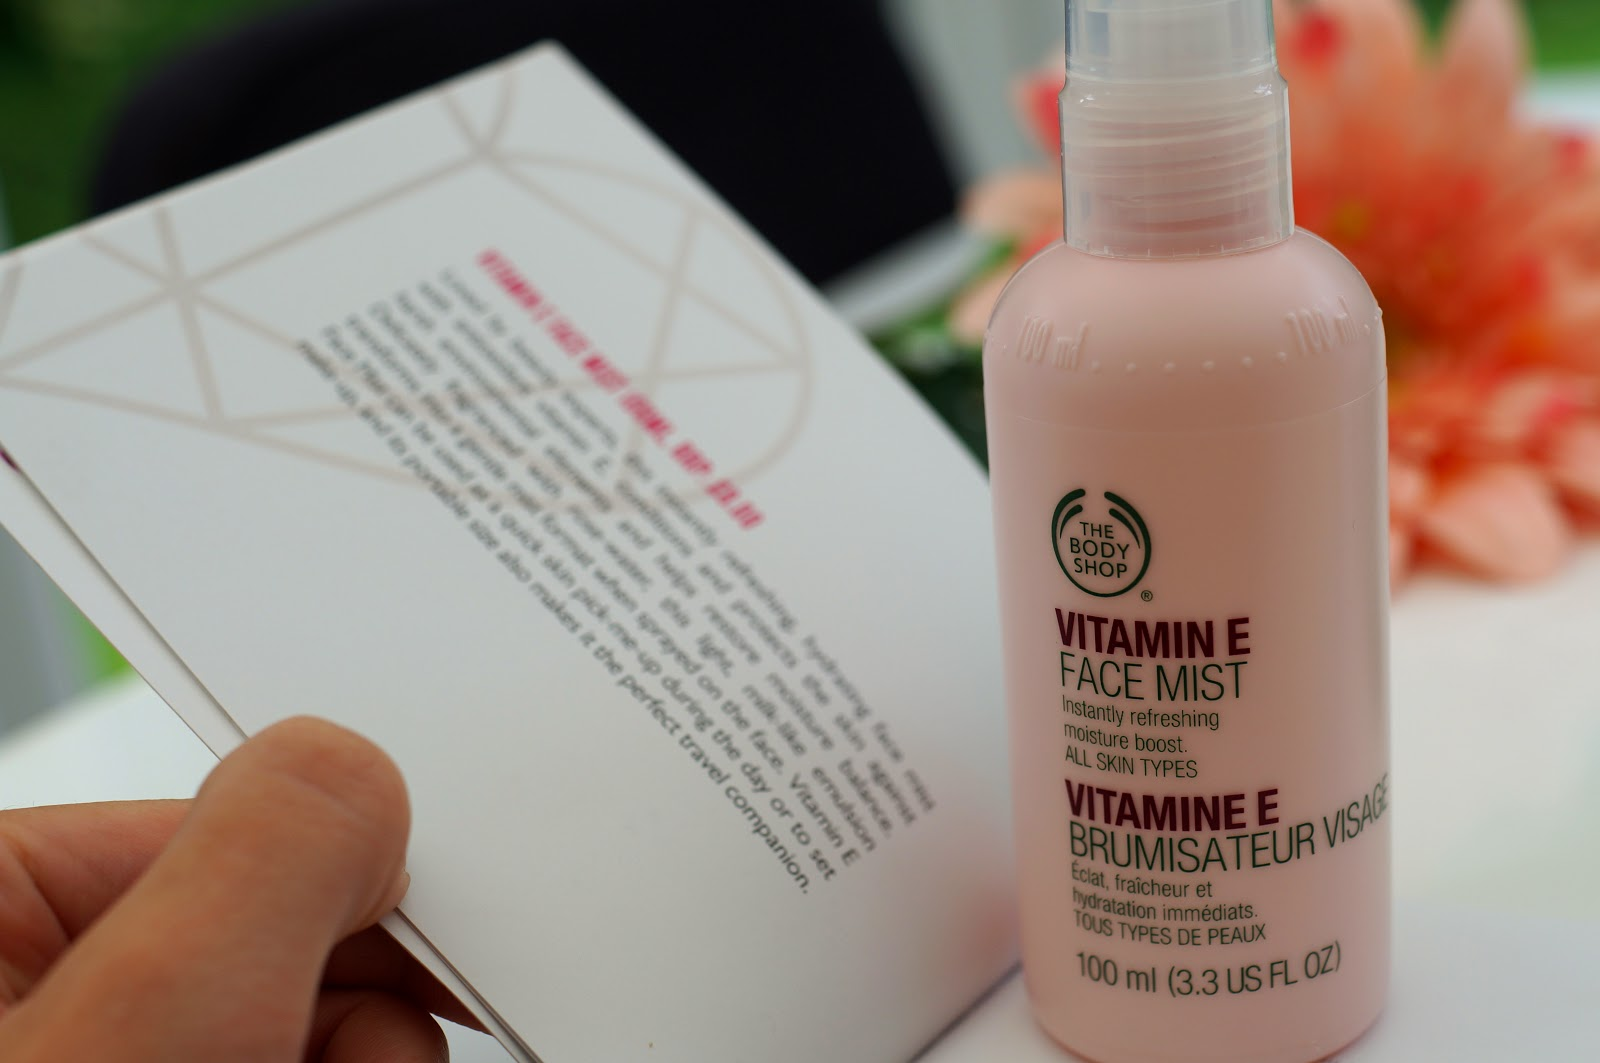 The Body Shop Vitamin E Face Mist